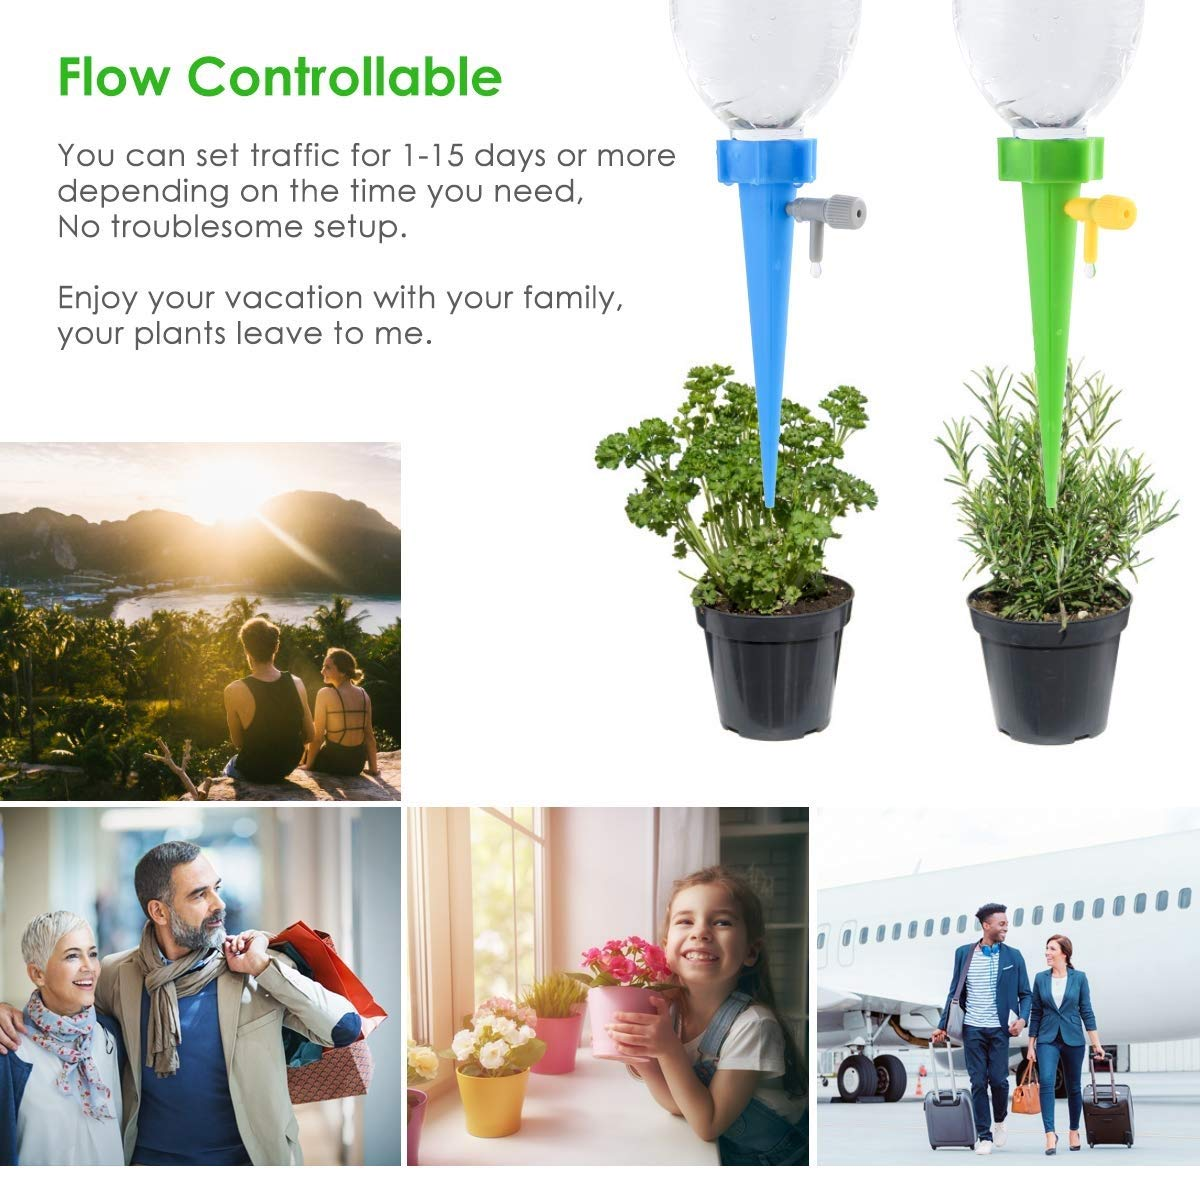 Petyoung Upgraded 12Pcs Plant Self Watering Spikes System,Plant Waterer with Anti-tilt Bracket and Slow Release Control Valve Switch,Self Irrigation Watering Drip Devices Suitable for 98/% Bottles